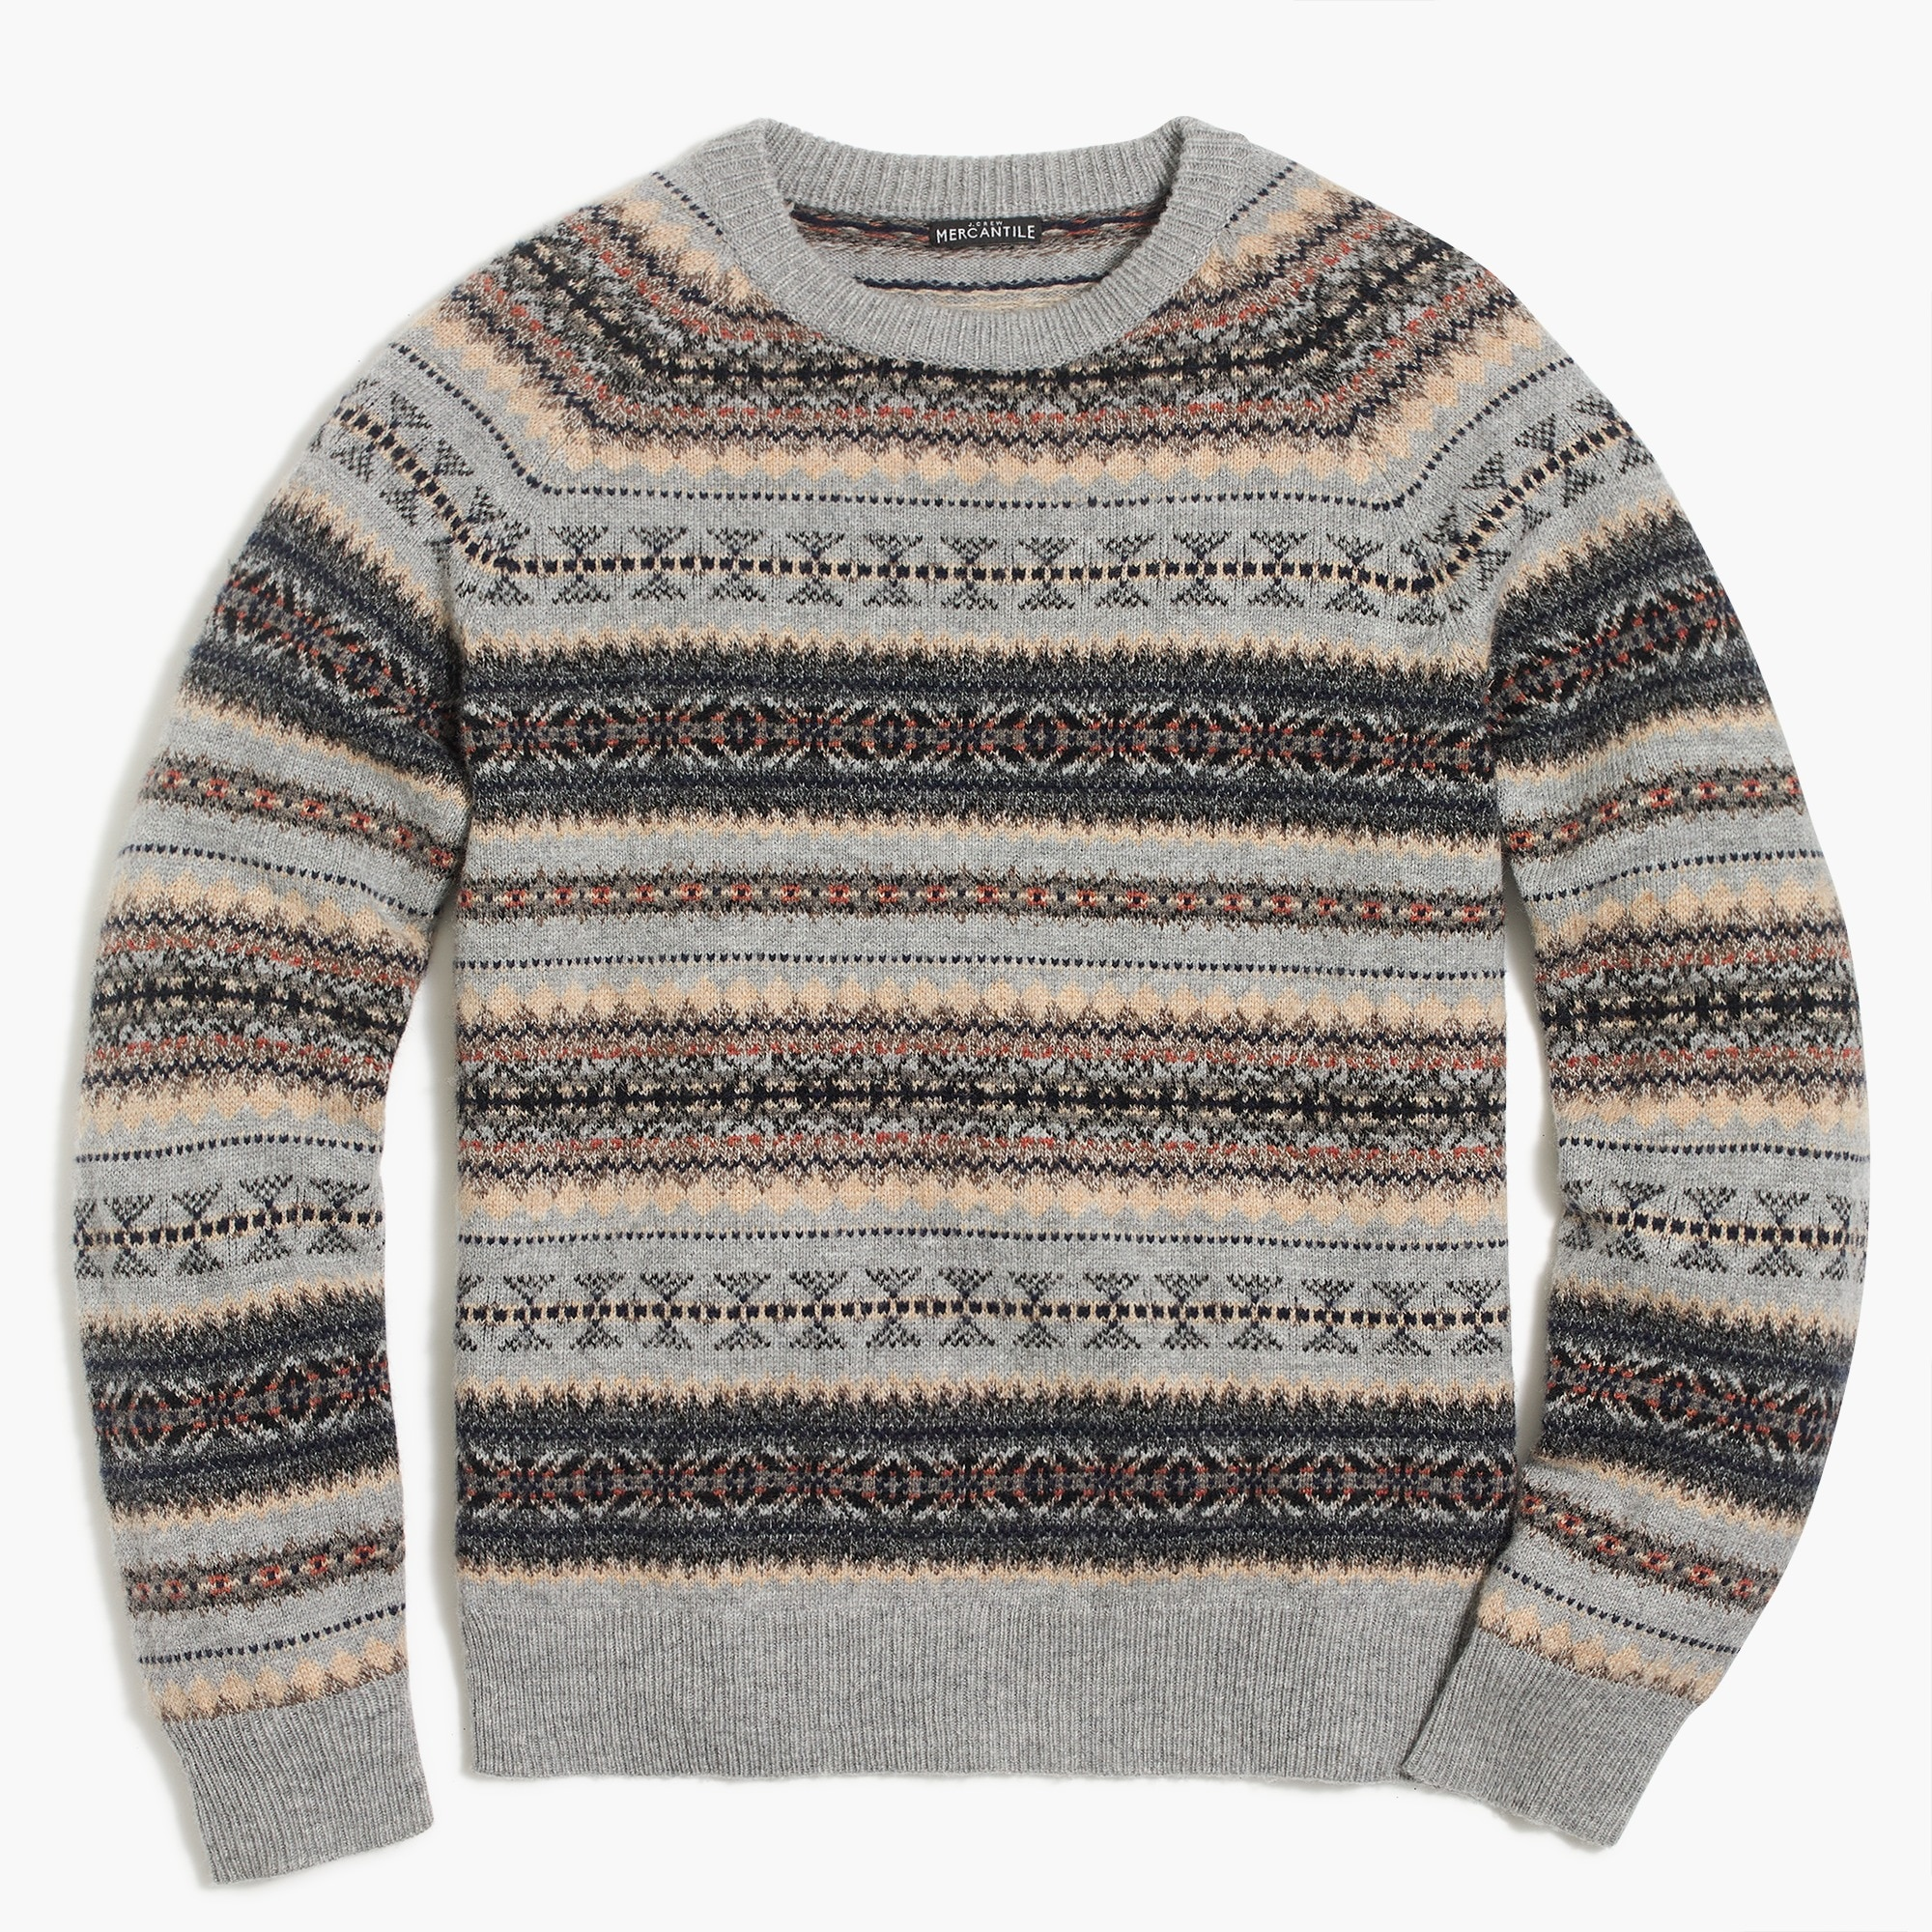 factory mens Fair isle crewneck sweater in supersoft wool blend